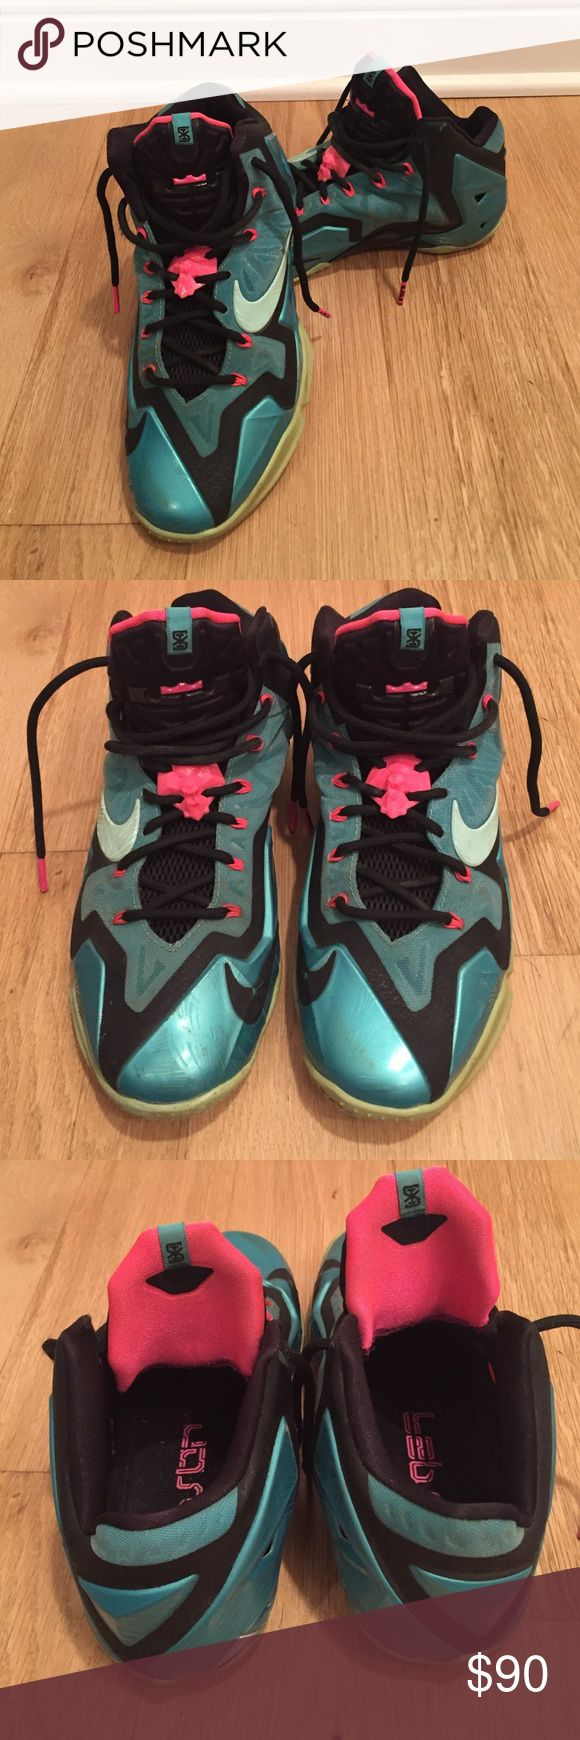 Men's Lebron 11 South Beach Sneakers Men's turquoise, pink and black Lebron 11 South Beach sneakers. Size 8.5. Worn, but in very good condition. Nike Shoes Sneakers